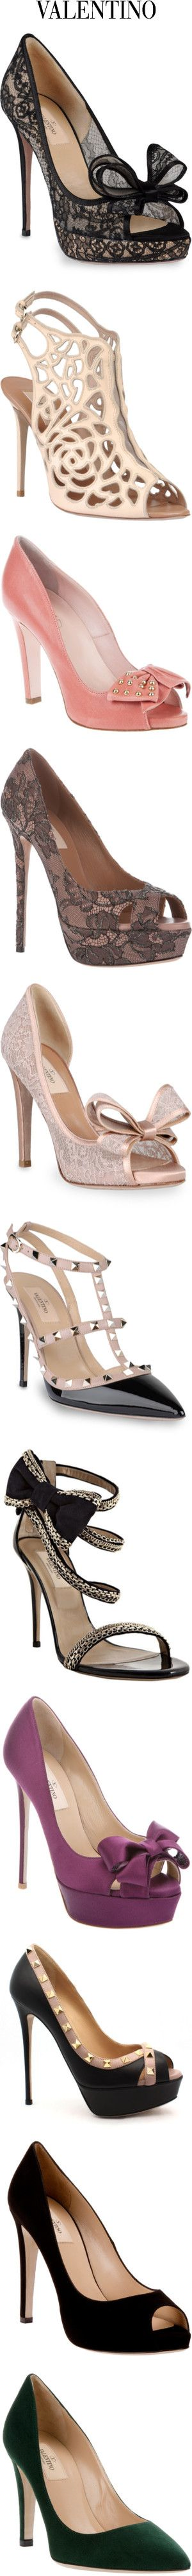 A collection of gorgoues Valentino heels, sandals and pumps! Which ones are your favorite?